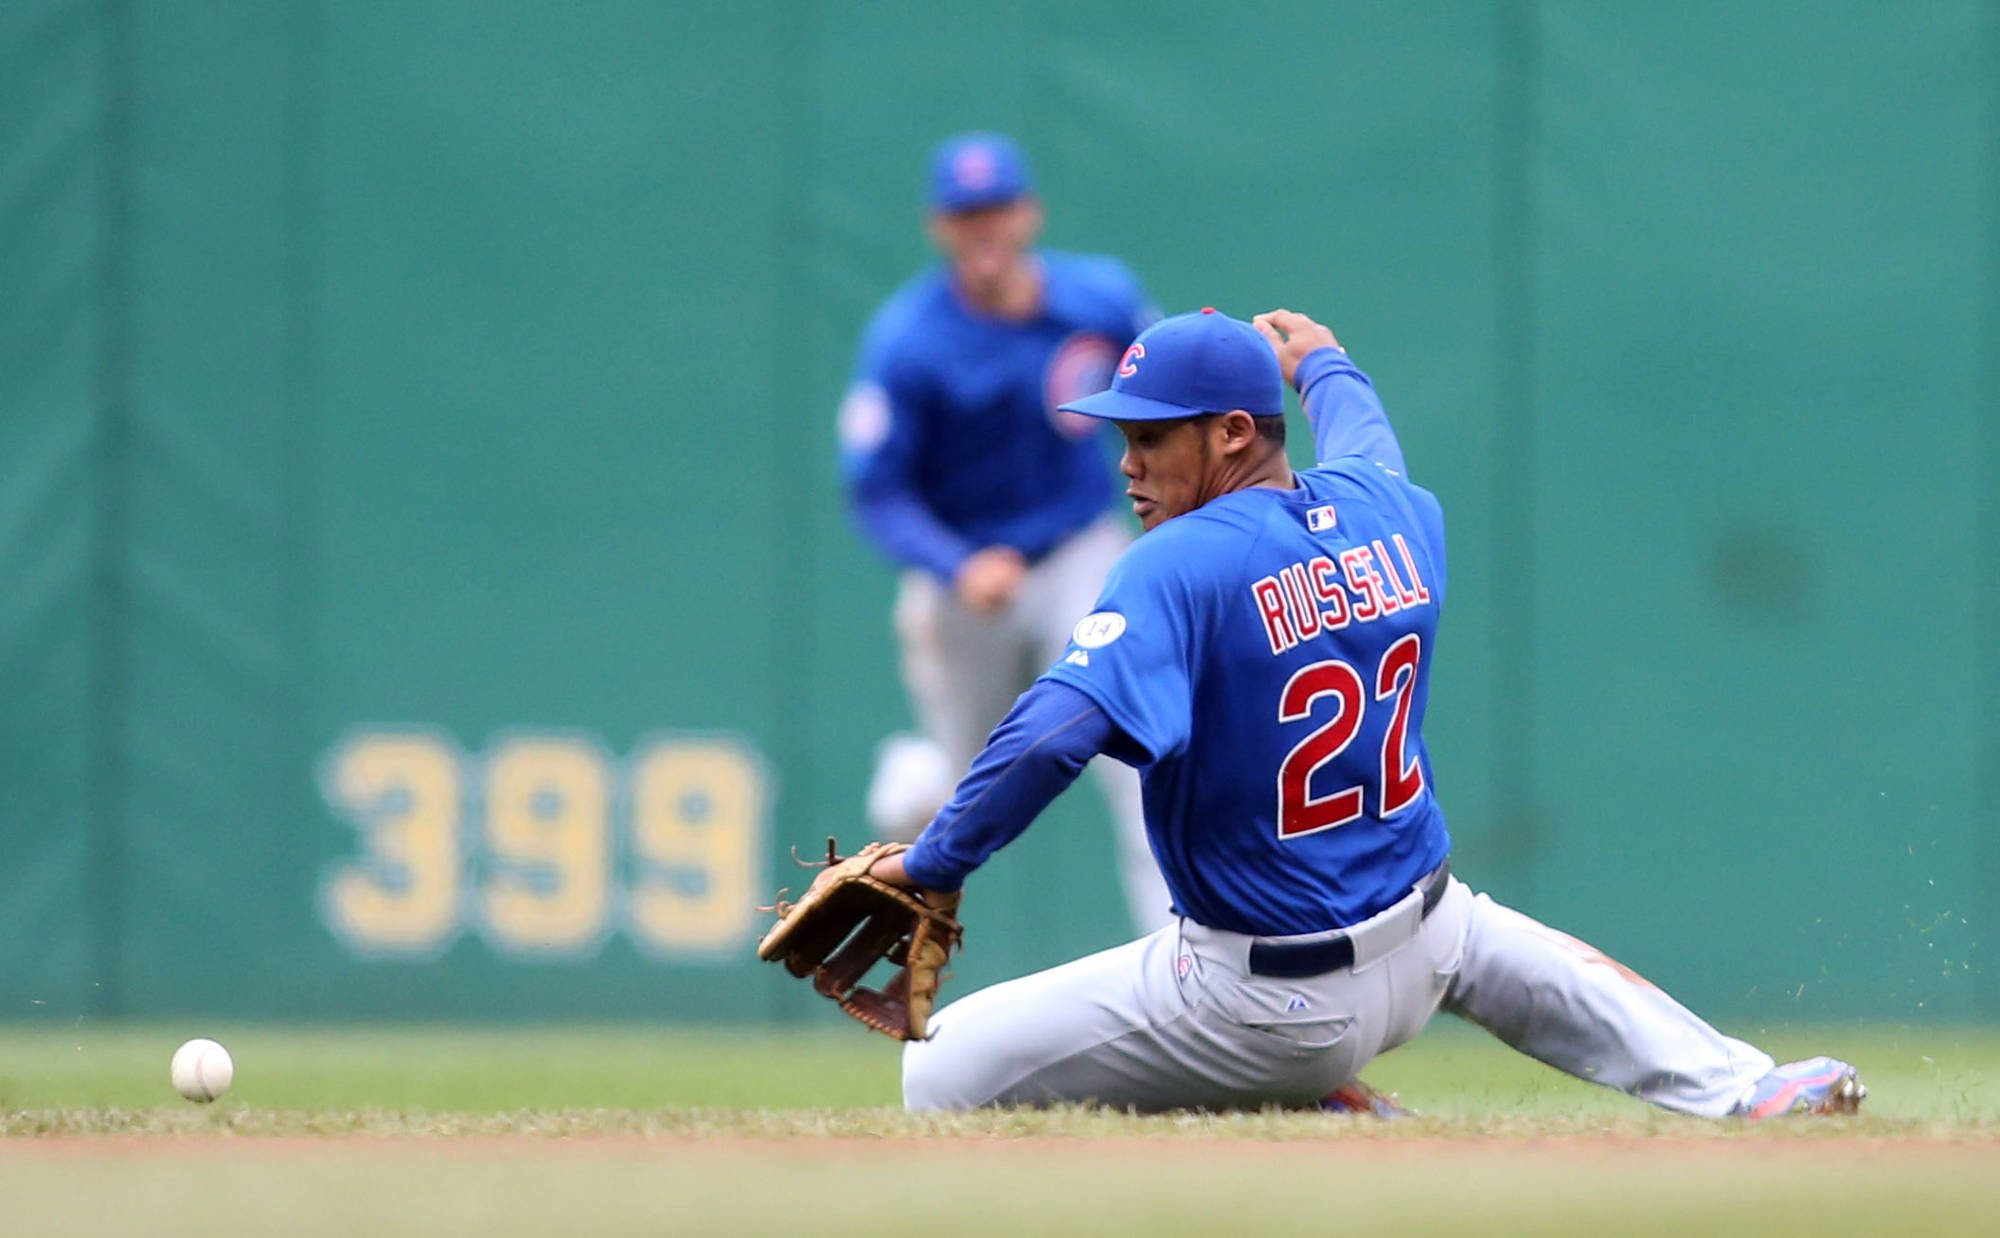 2000x1238 - Addison Russell Wallpapers 4